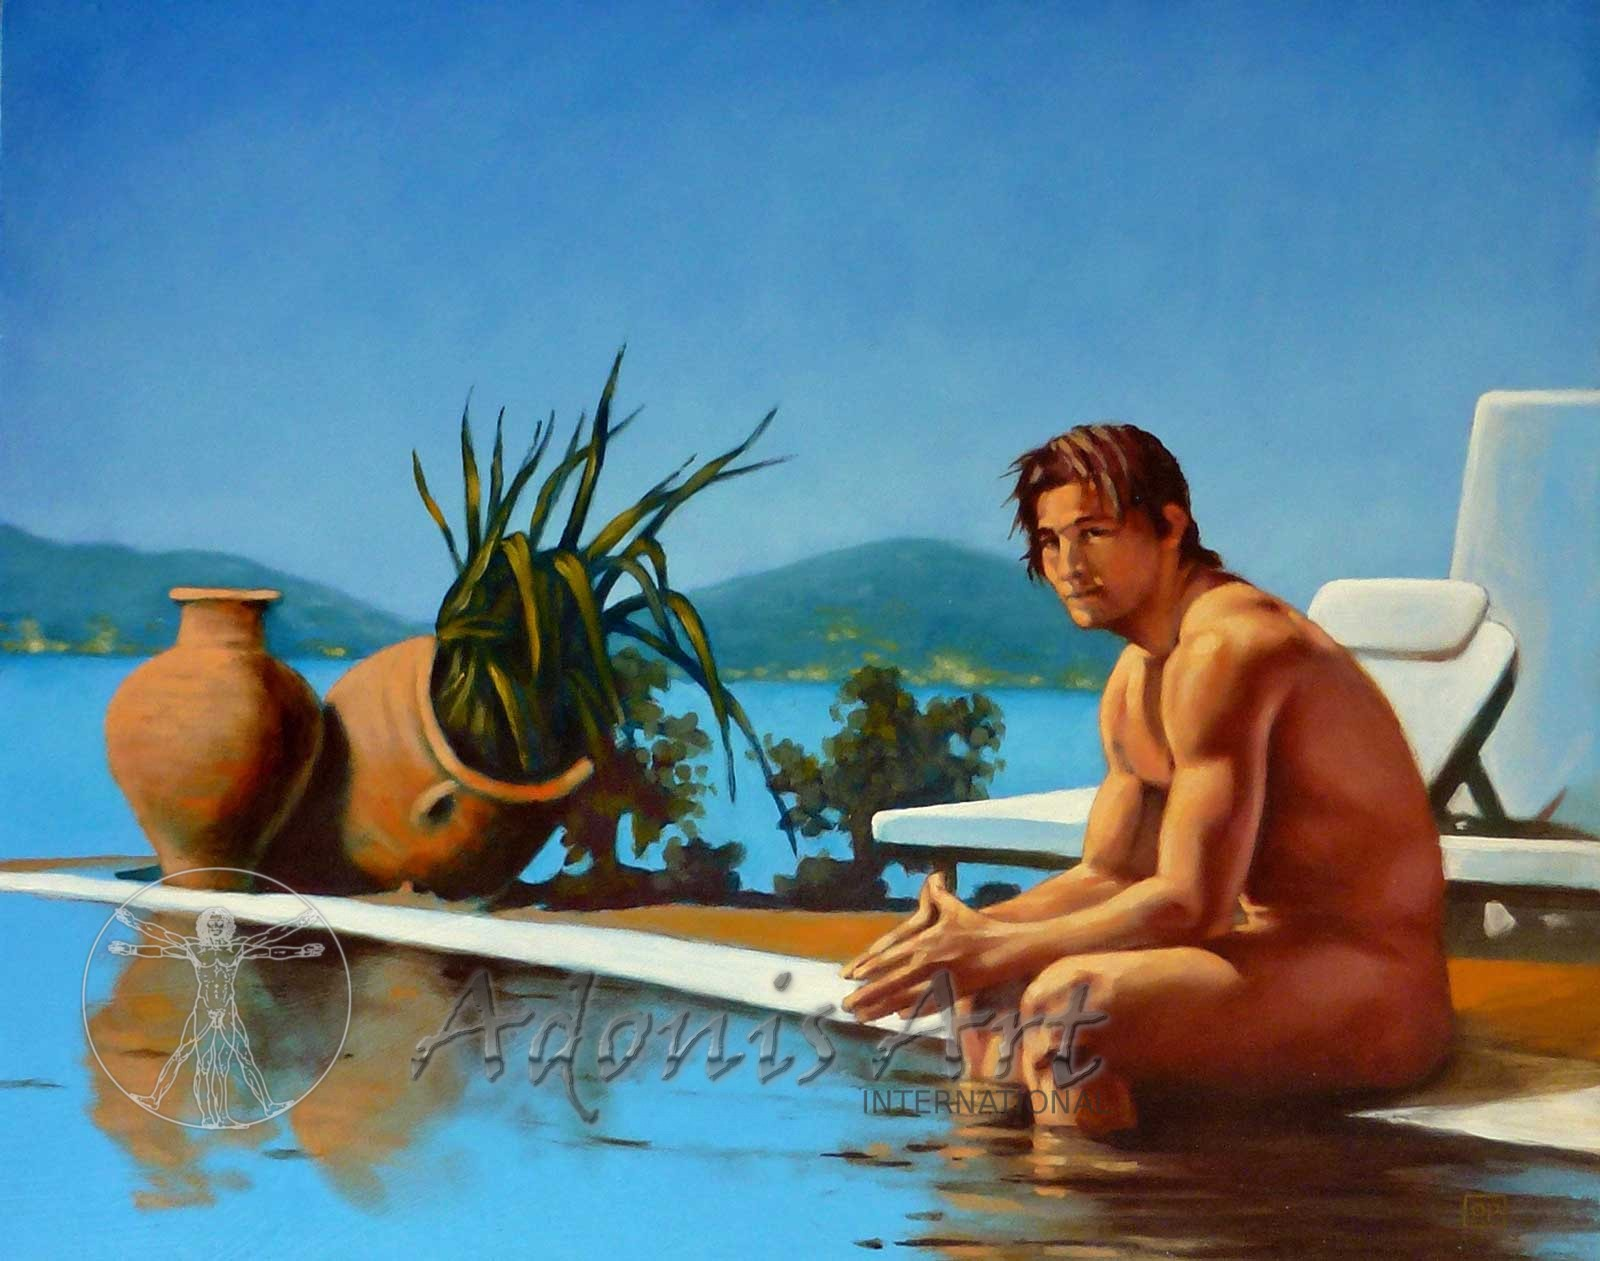 'The Infinity Pool' by Andrew Potter